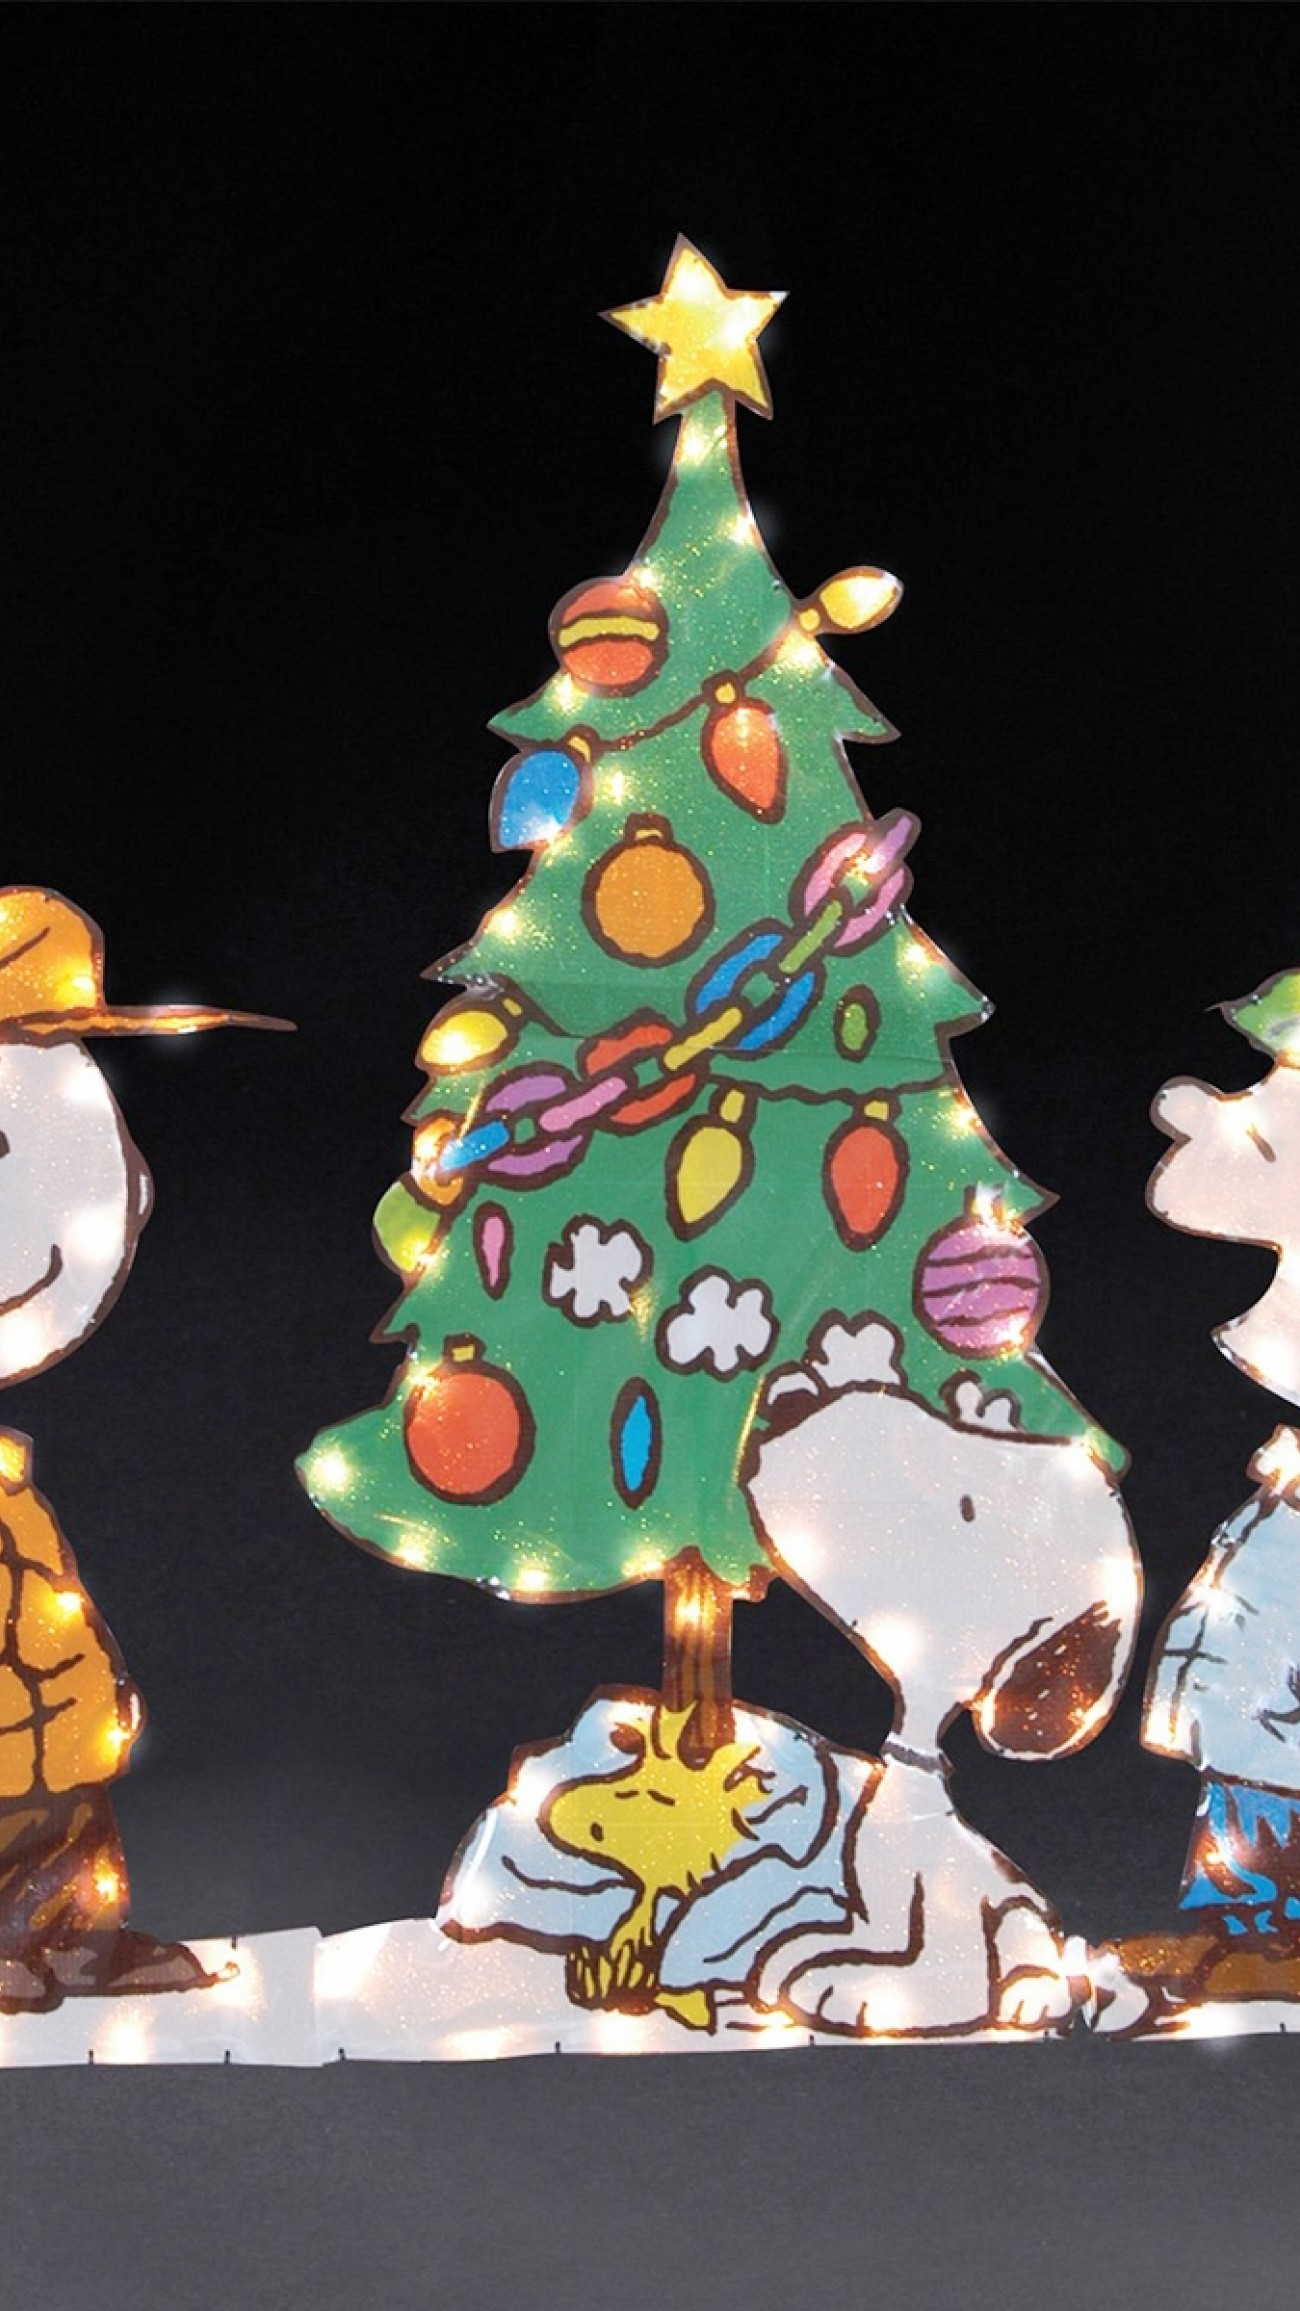 Peanuts Christmas Wallpaper 35 Images